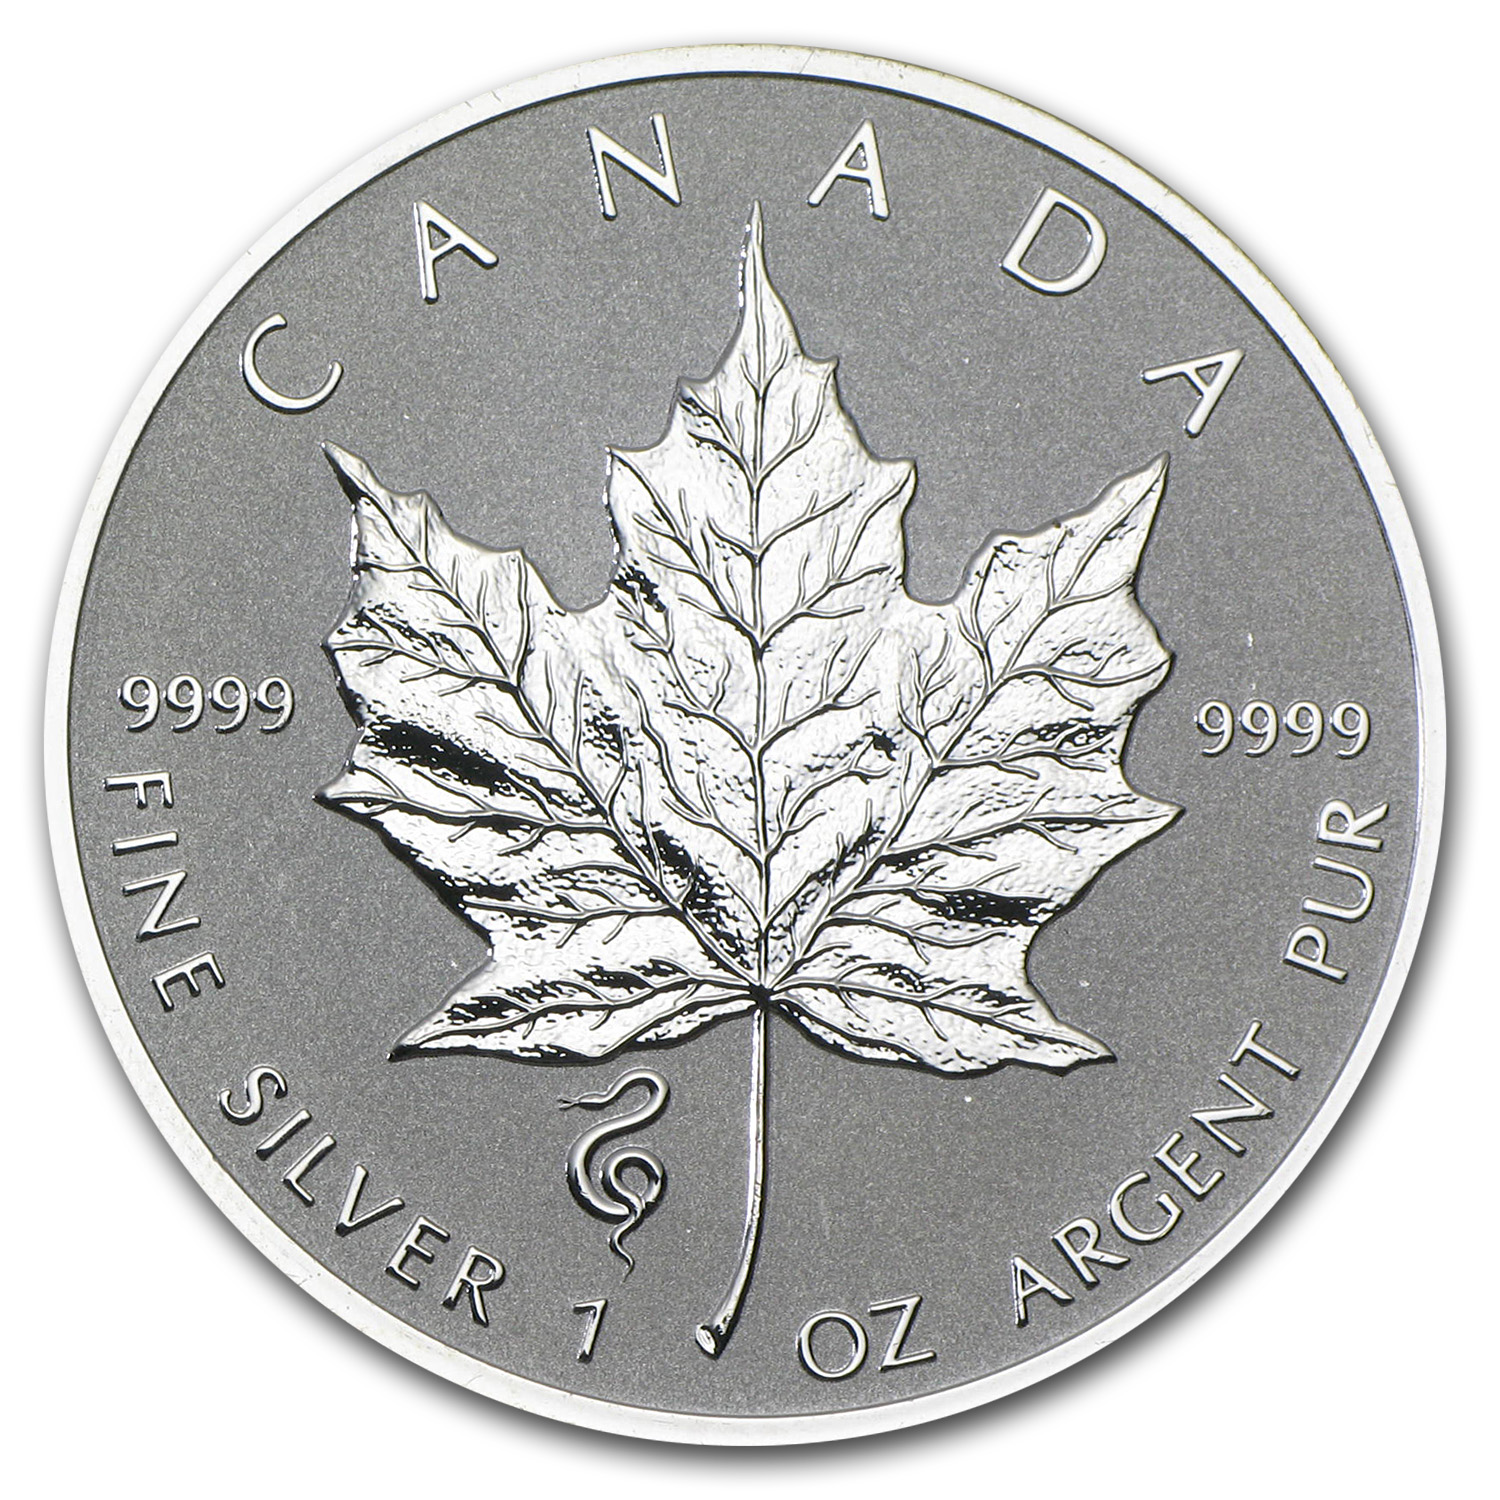 2013 1 oz Silver Maple Leaf - Snake Privy - Abrasions/Spotted